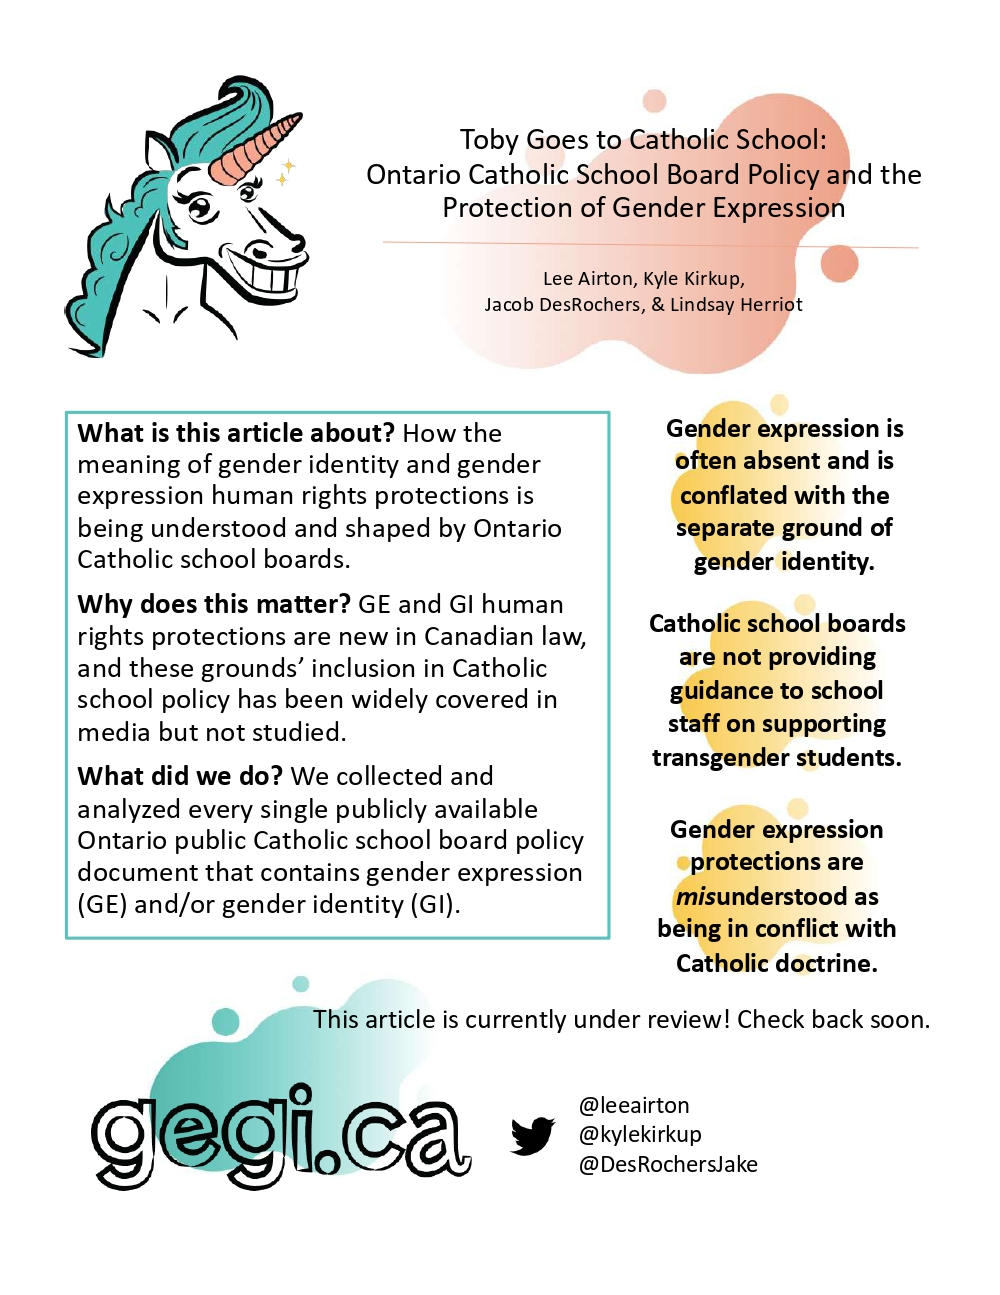 Gegi.ca One-Pager - Toby goes to Catholic school